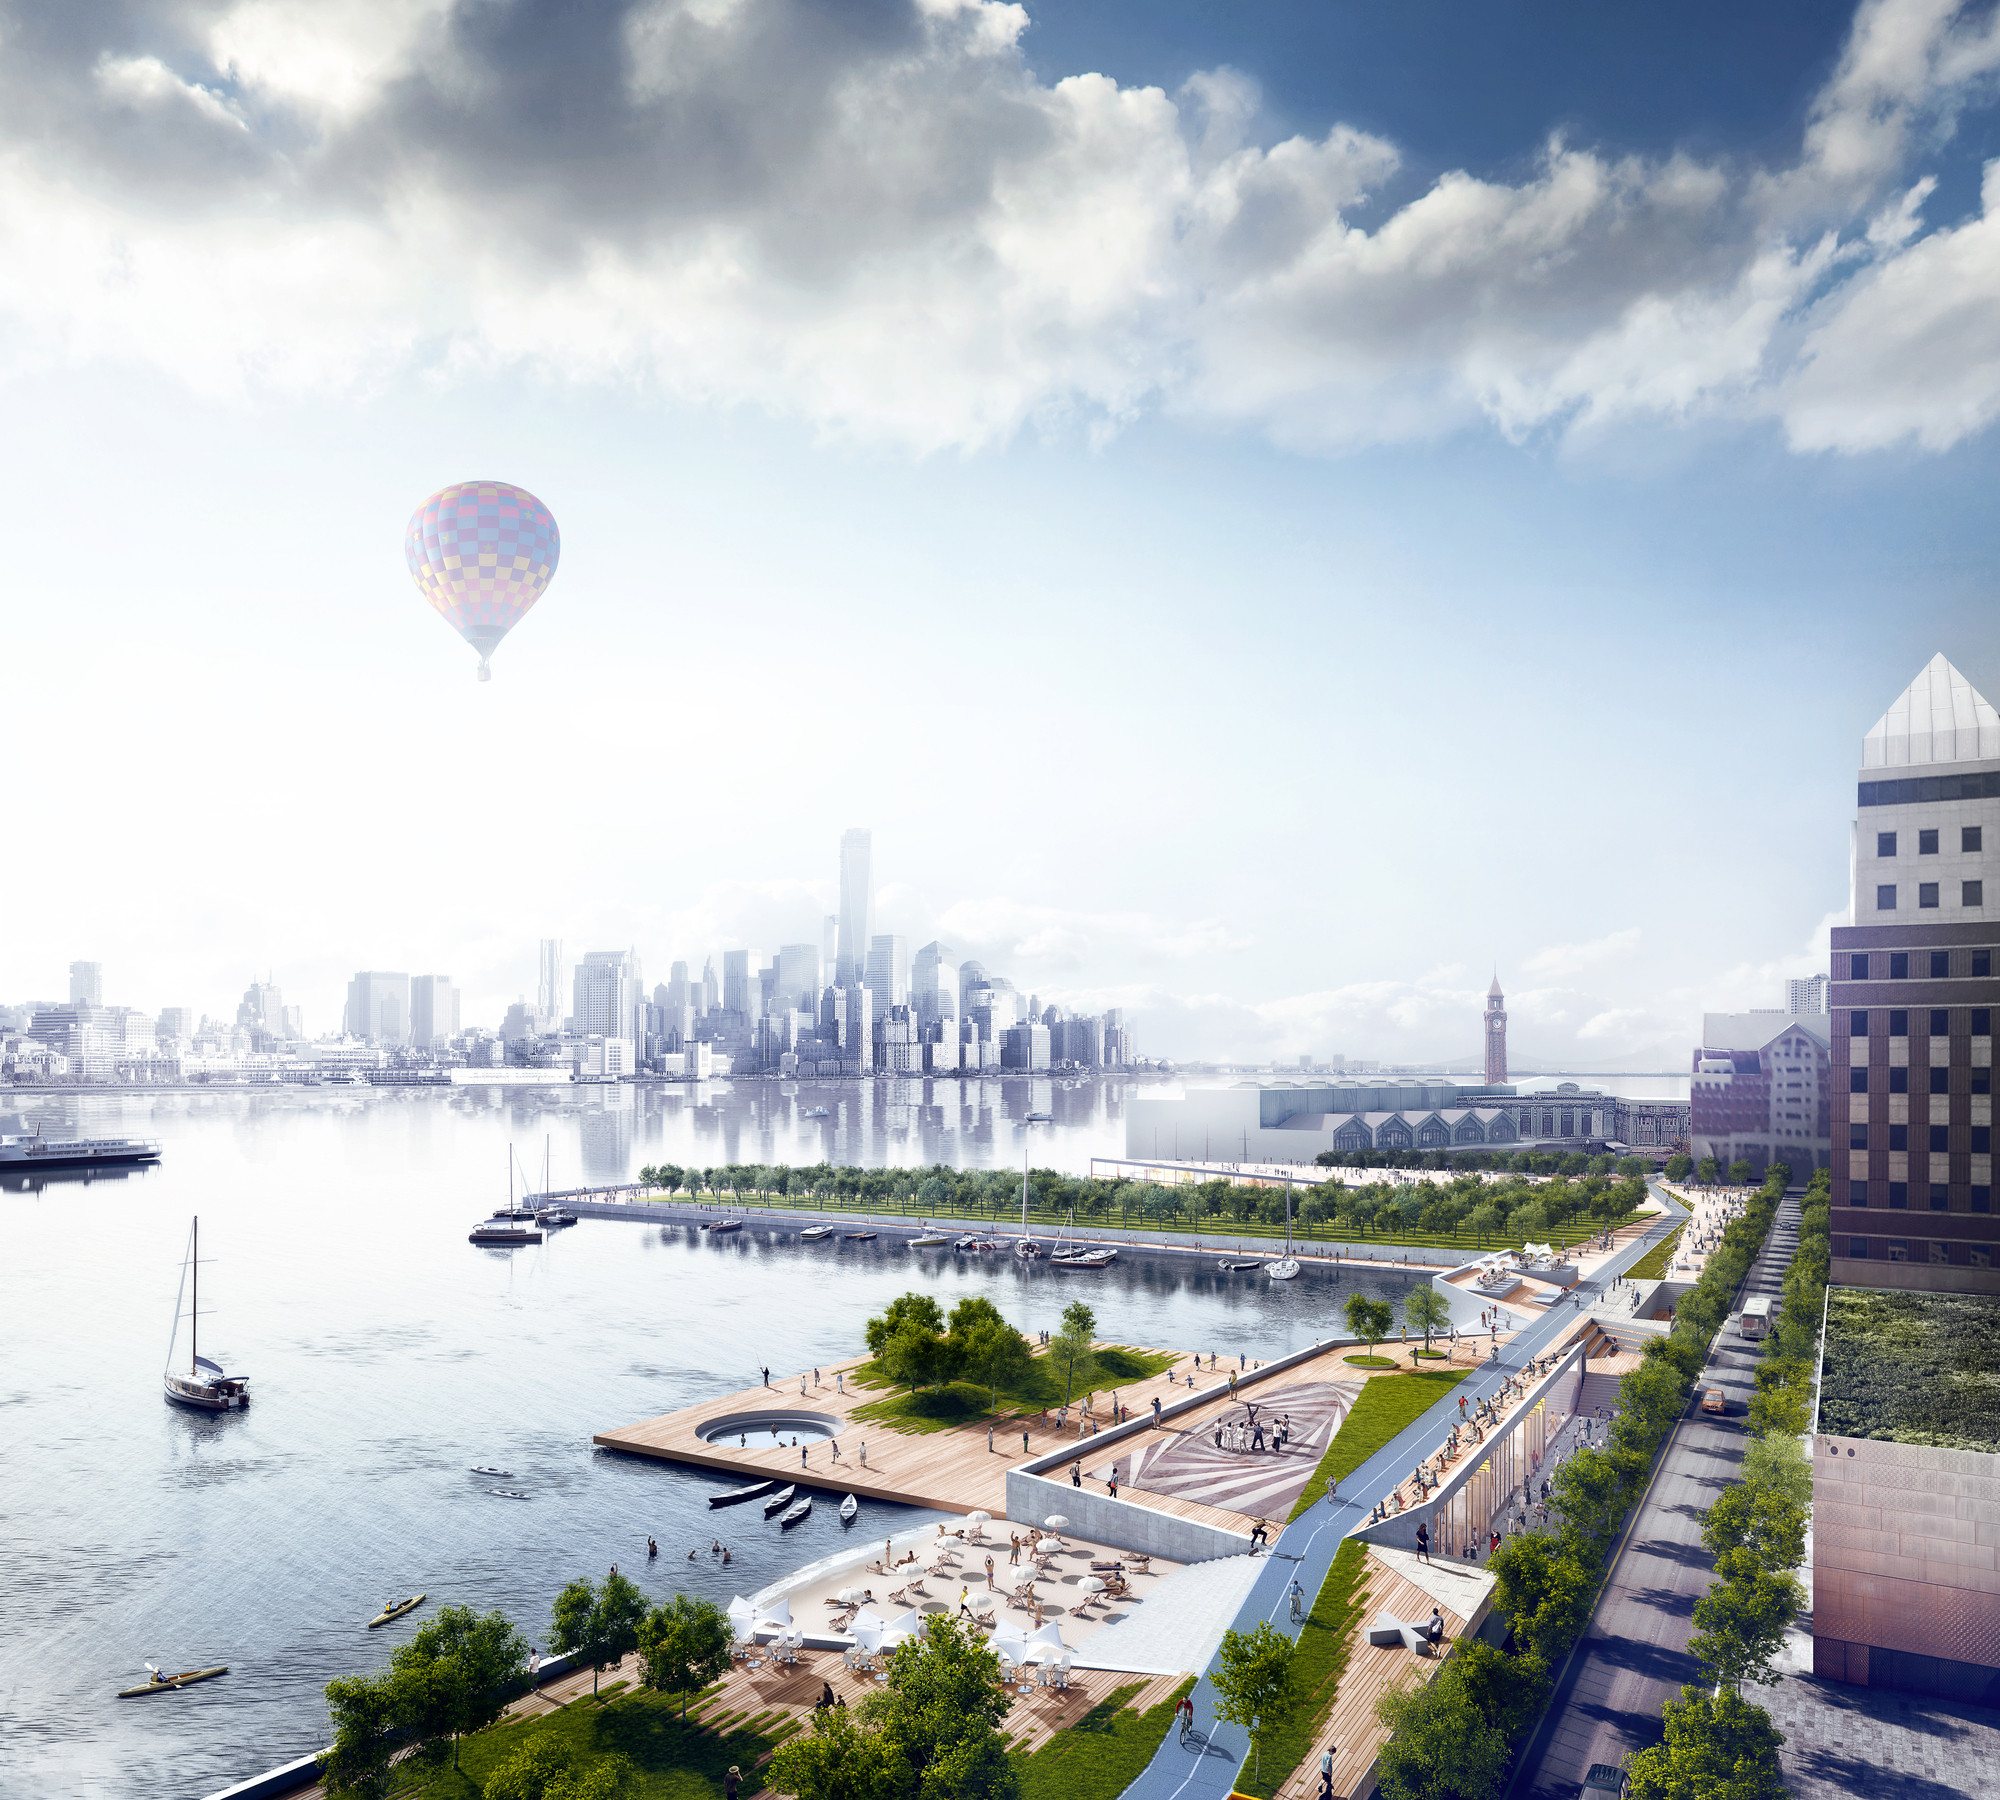 US Launches $1 Billion National Disaster Resilience Competition, OMA's vision for New York's Hoboken Waterfront - one of six winning proposals of Rebuild by Design (Click image to learn more). Image © OMA